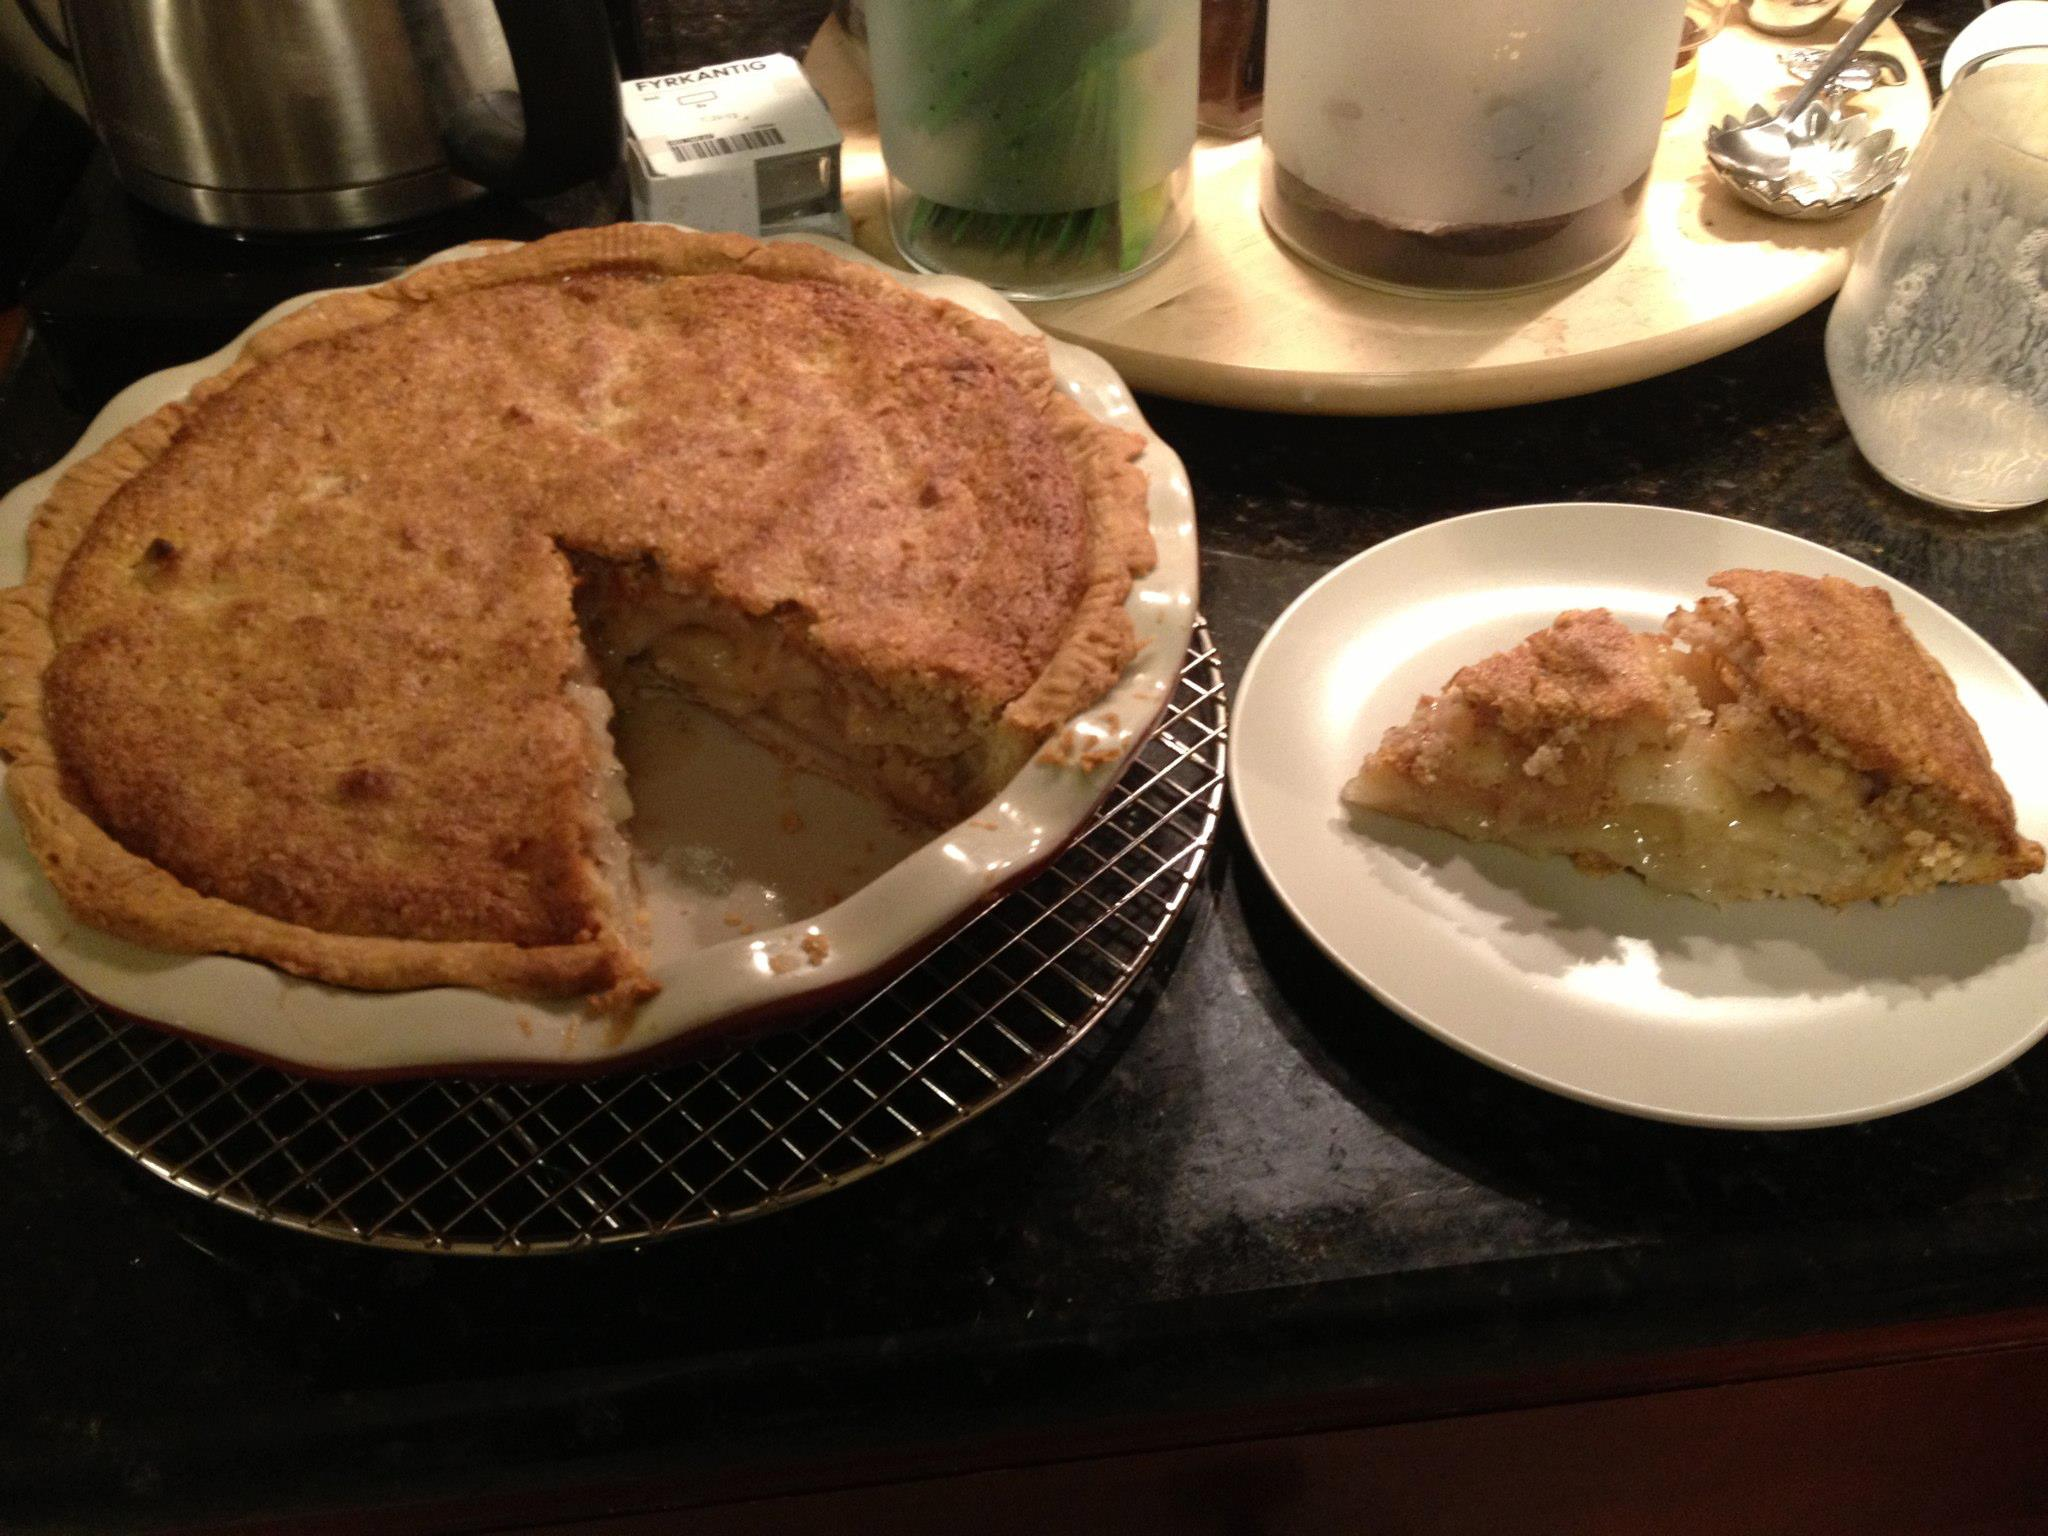 20121025-pear-pie-almond-topping